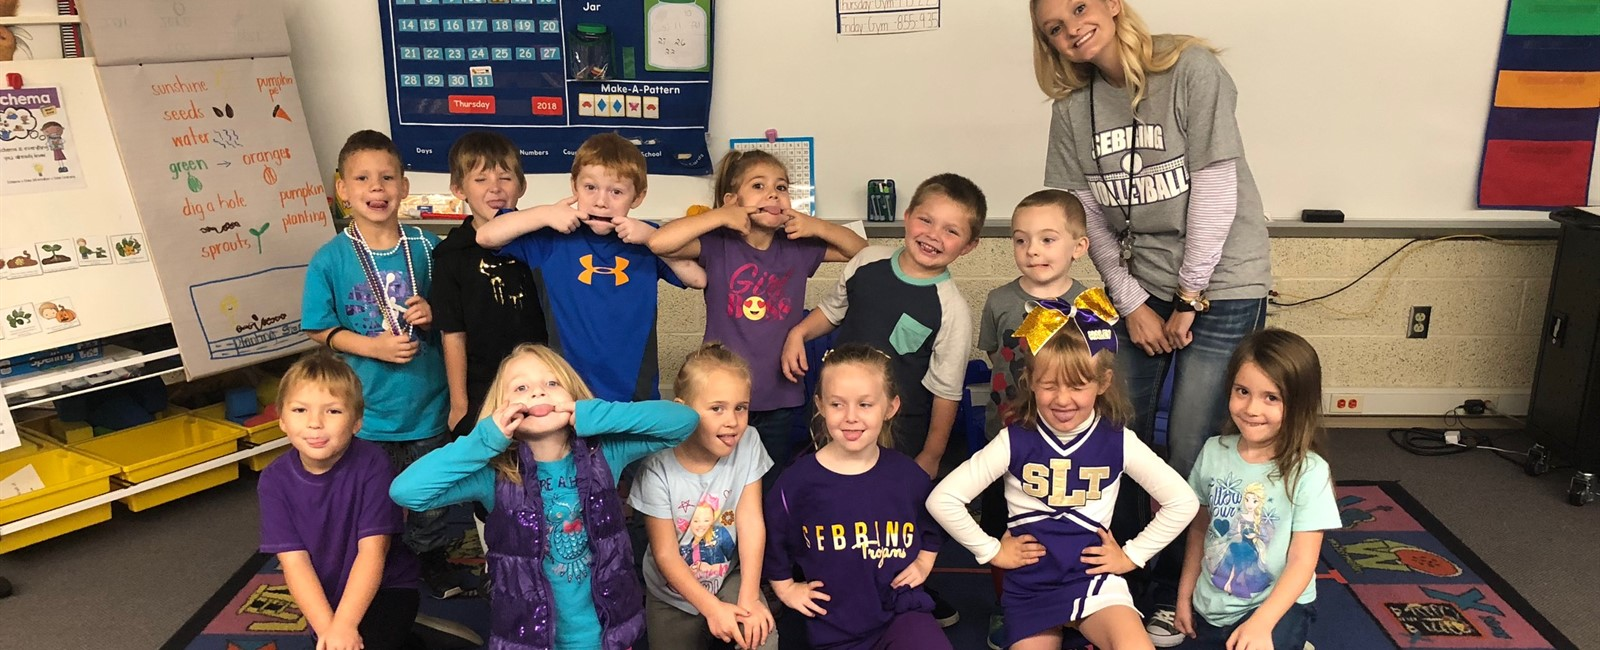 Kindergarten students enjoying Spirit Week